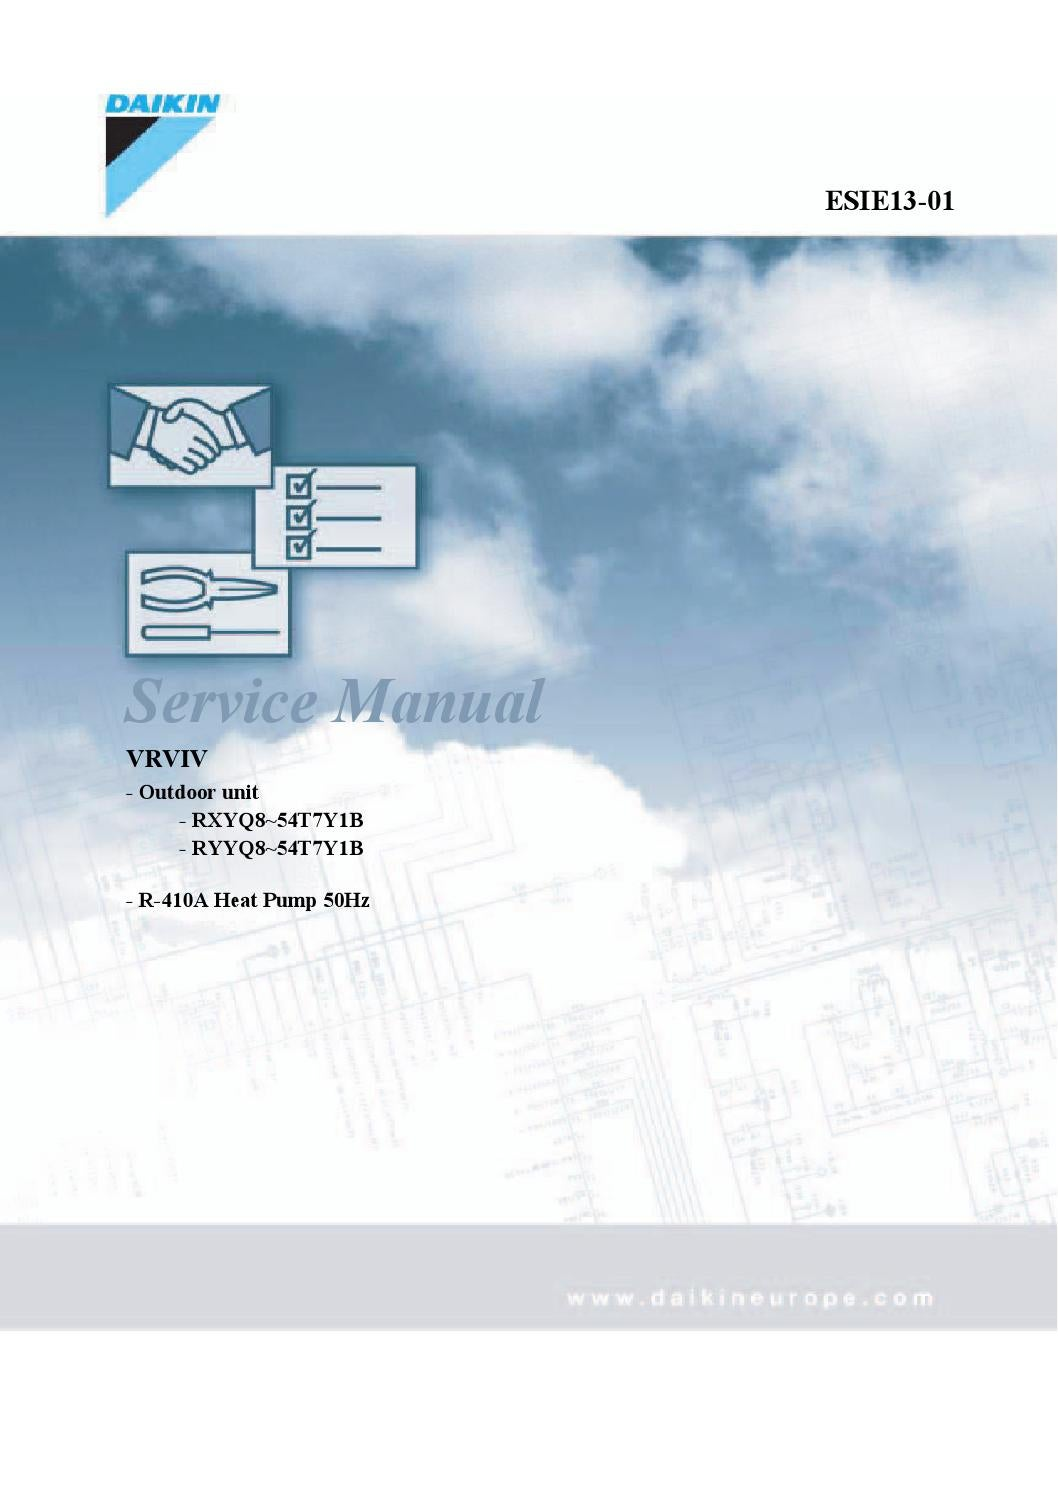 Daikin VRVIV - English Service Manual by PAULO MORENO - issuu